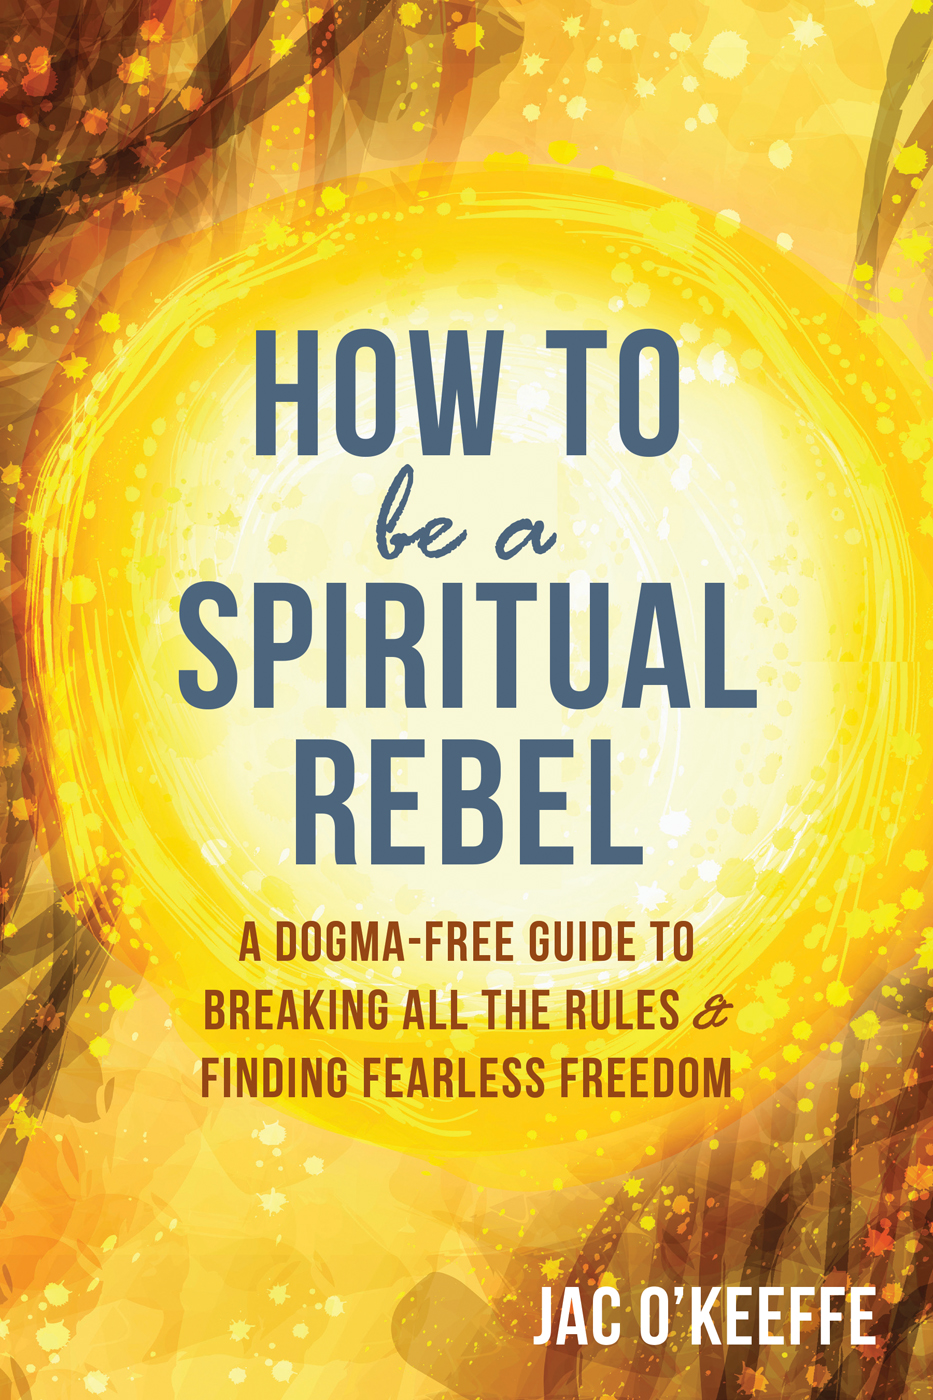 How to Be a Spiritual Rebel